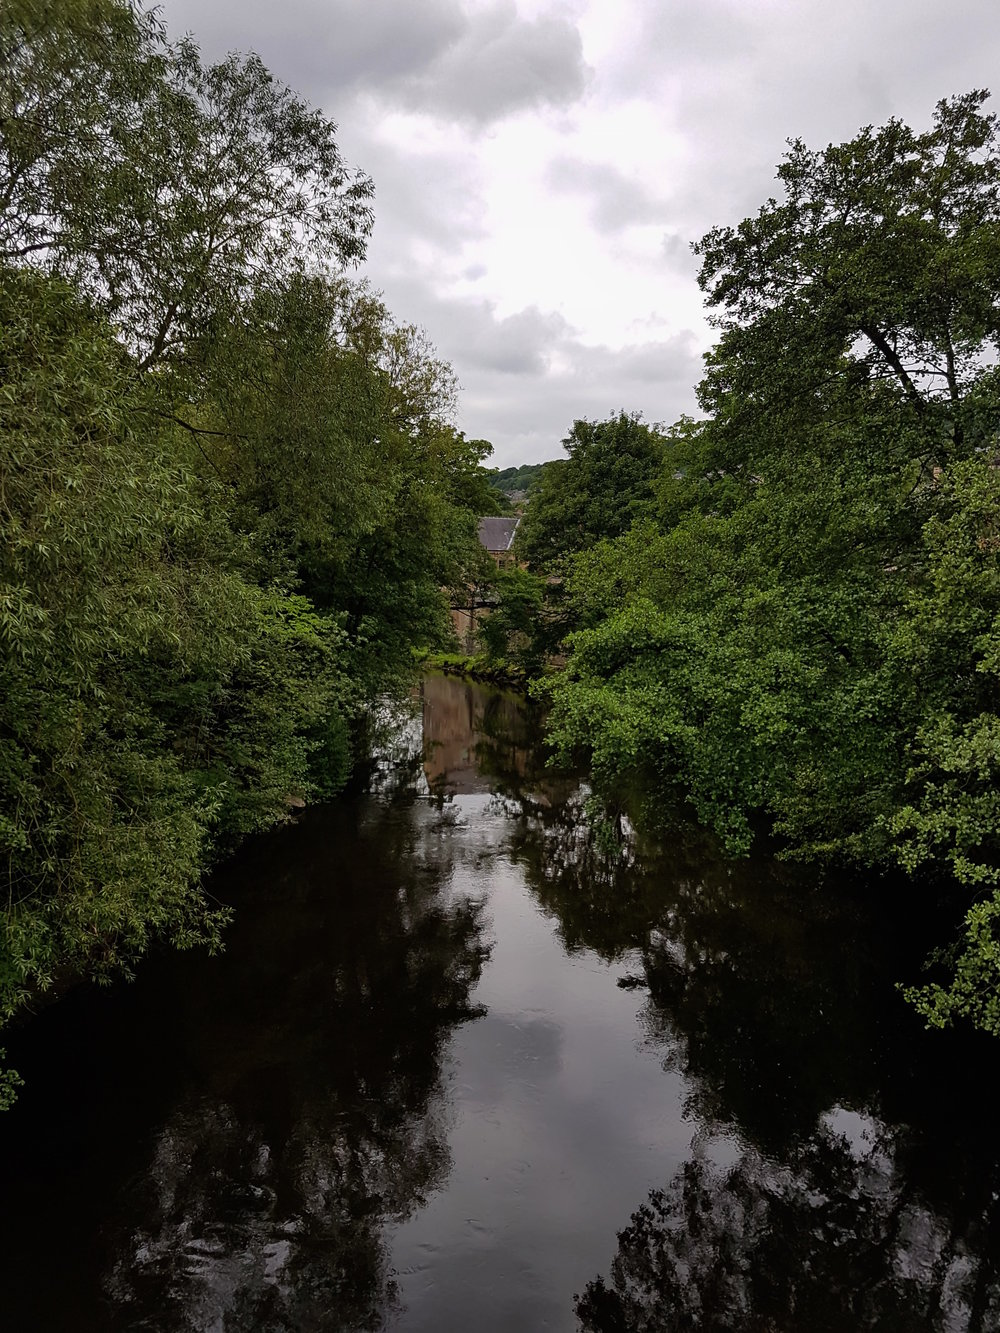 River Derwent in Matlock